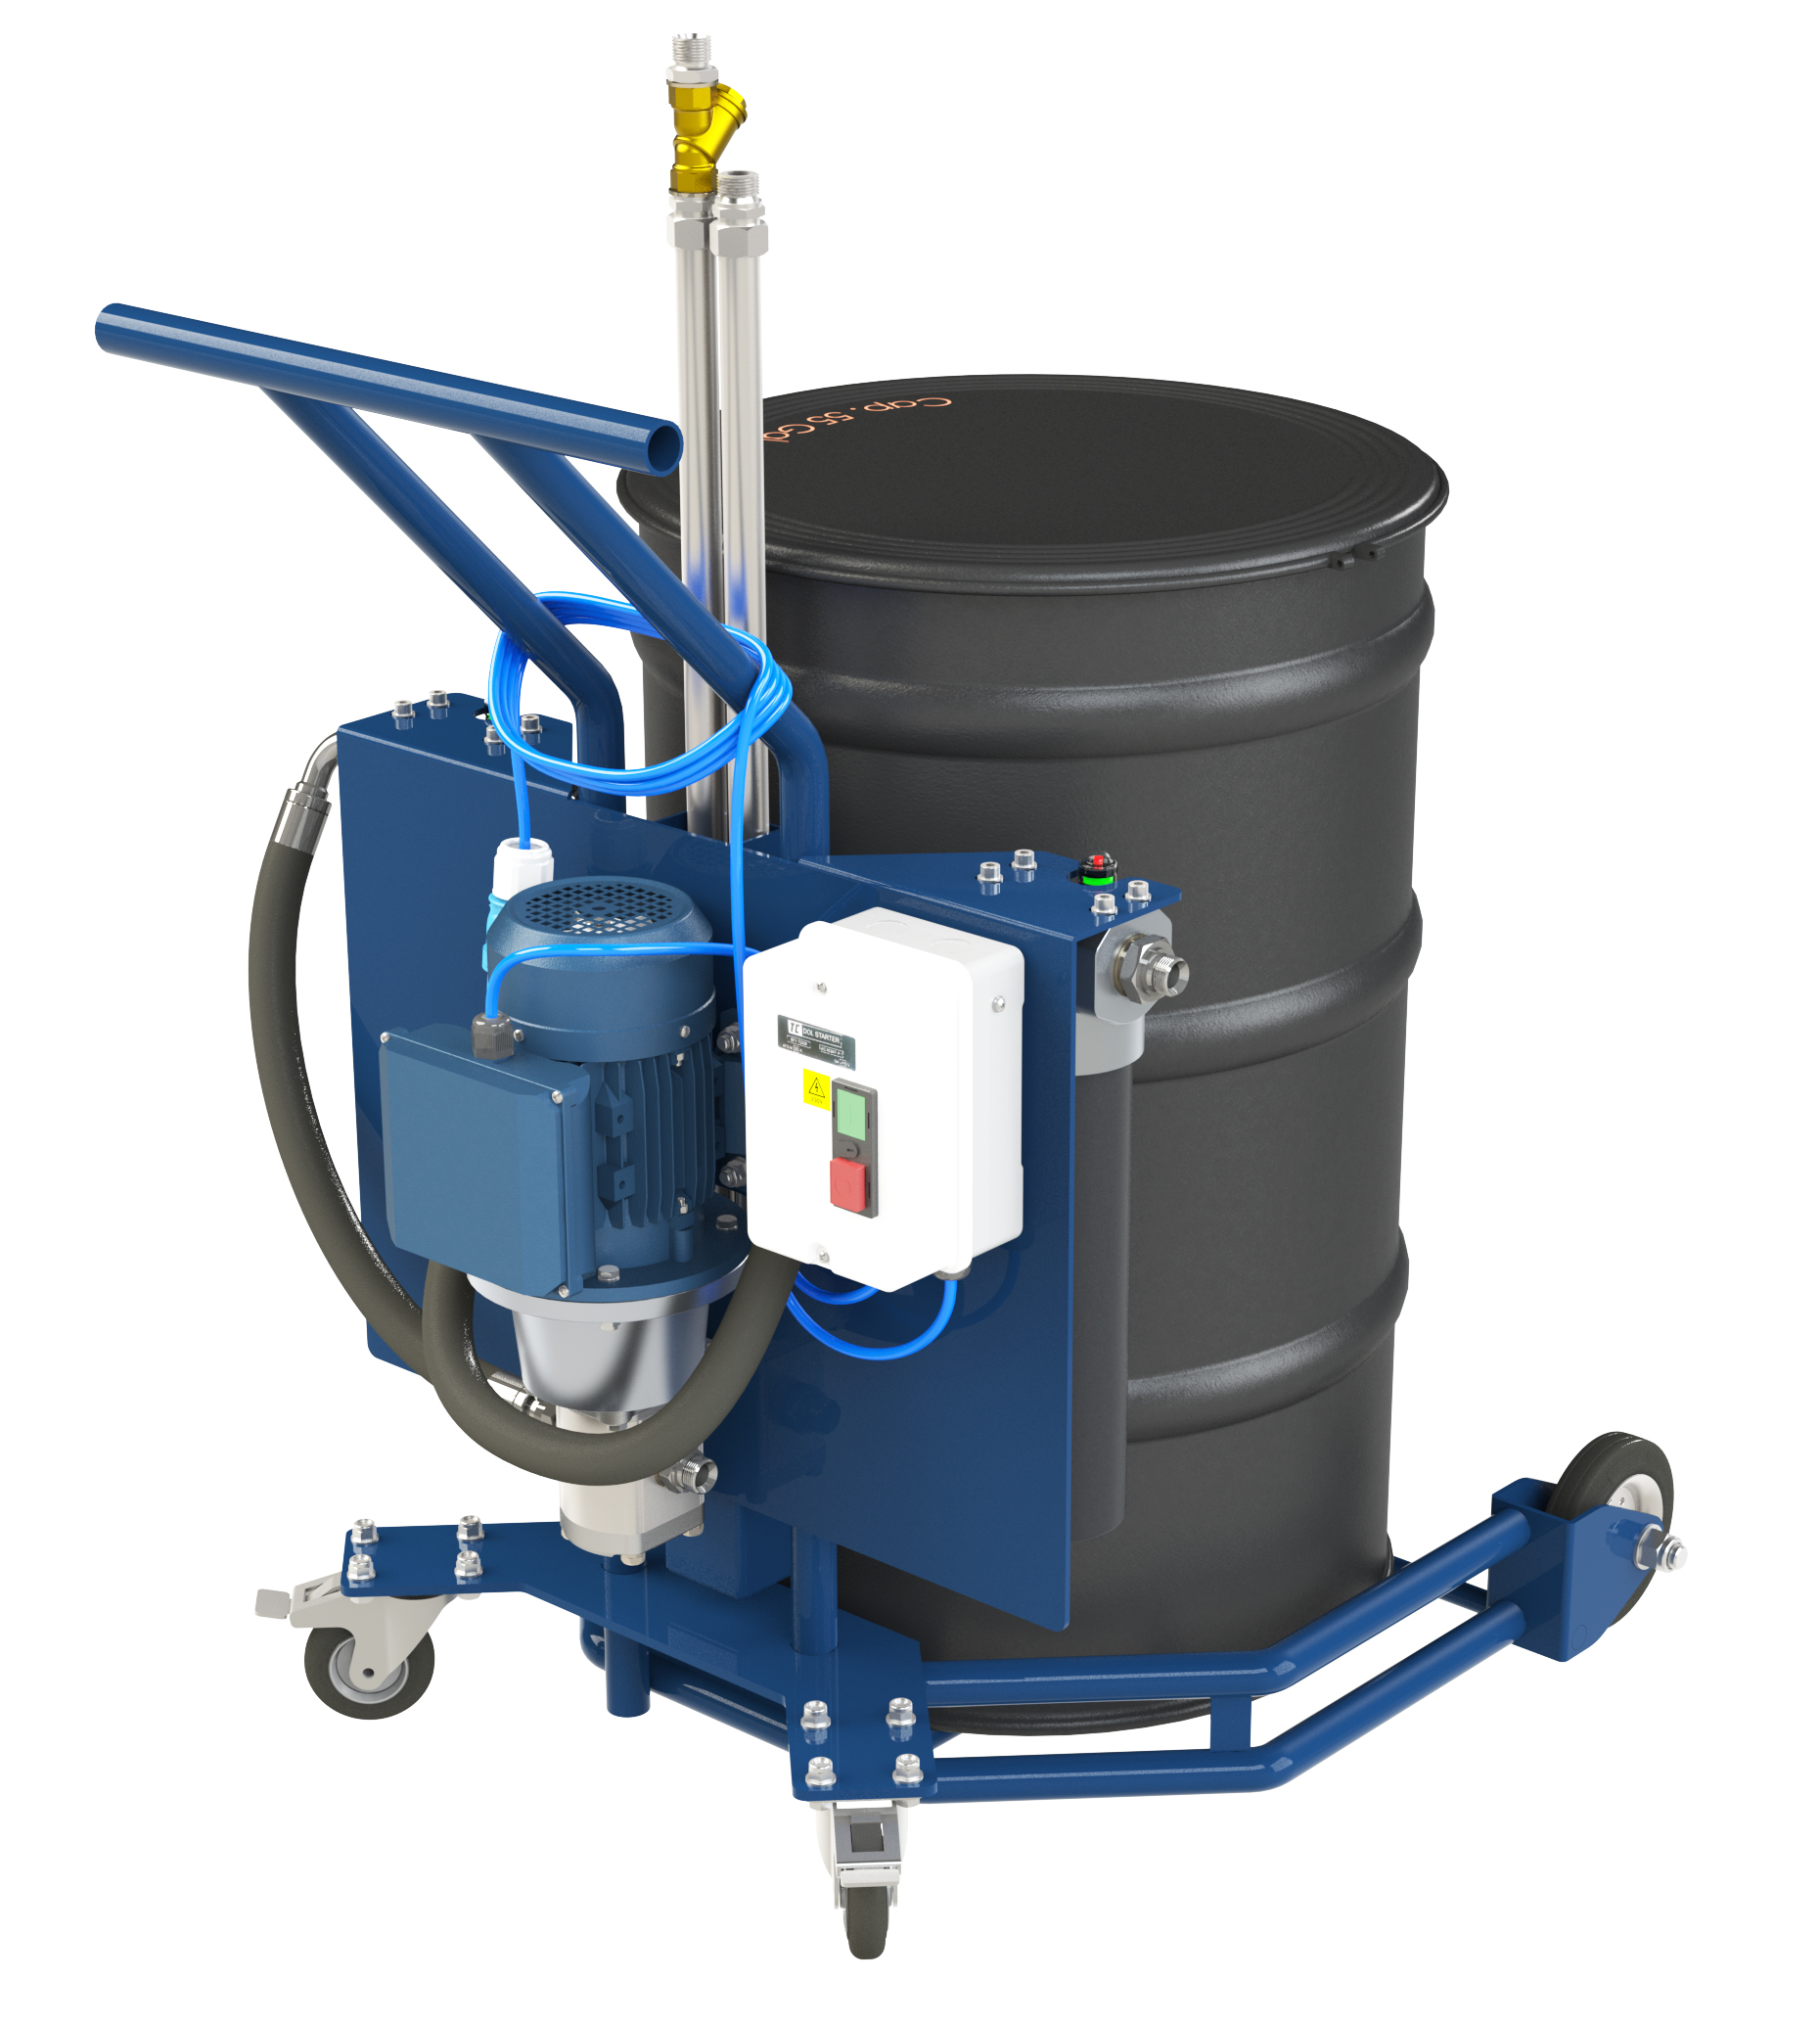 DFC-3000: OIL DRUM FILTER TROLLEY